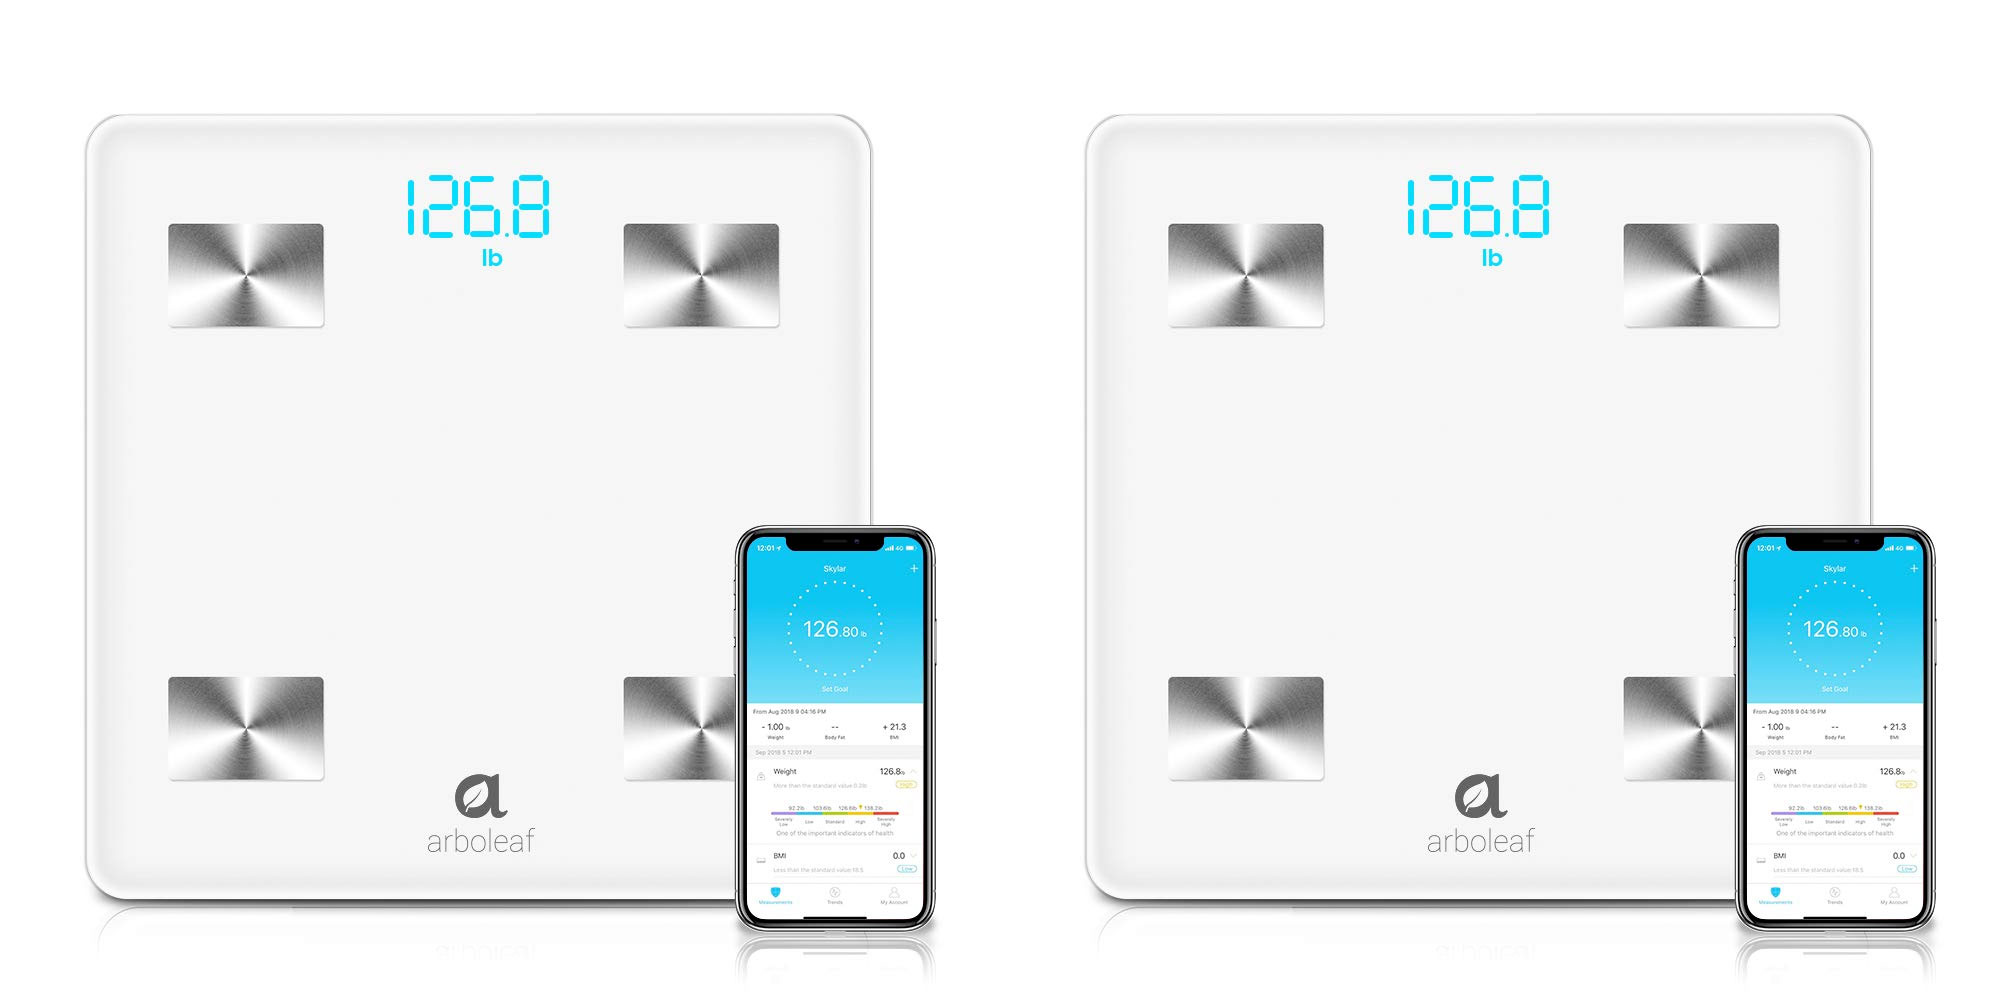 Track your weight in Apple Health or Google Fit w/ this $30 Bluetooth smart scale